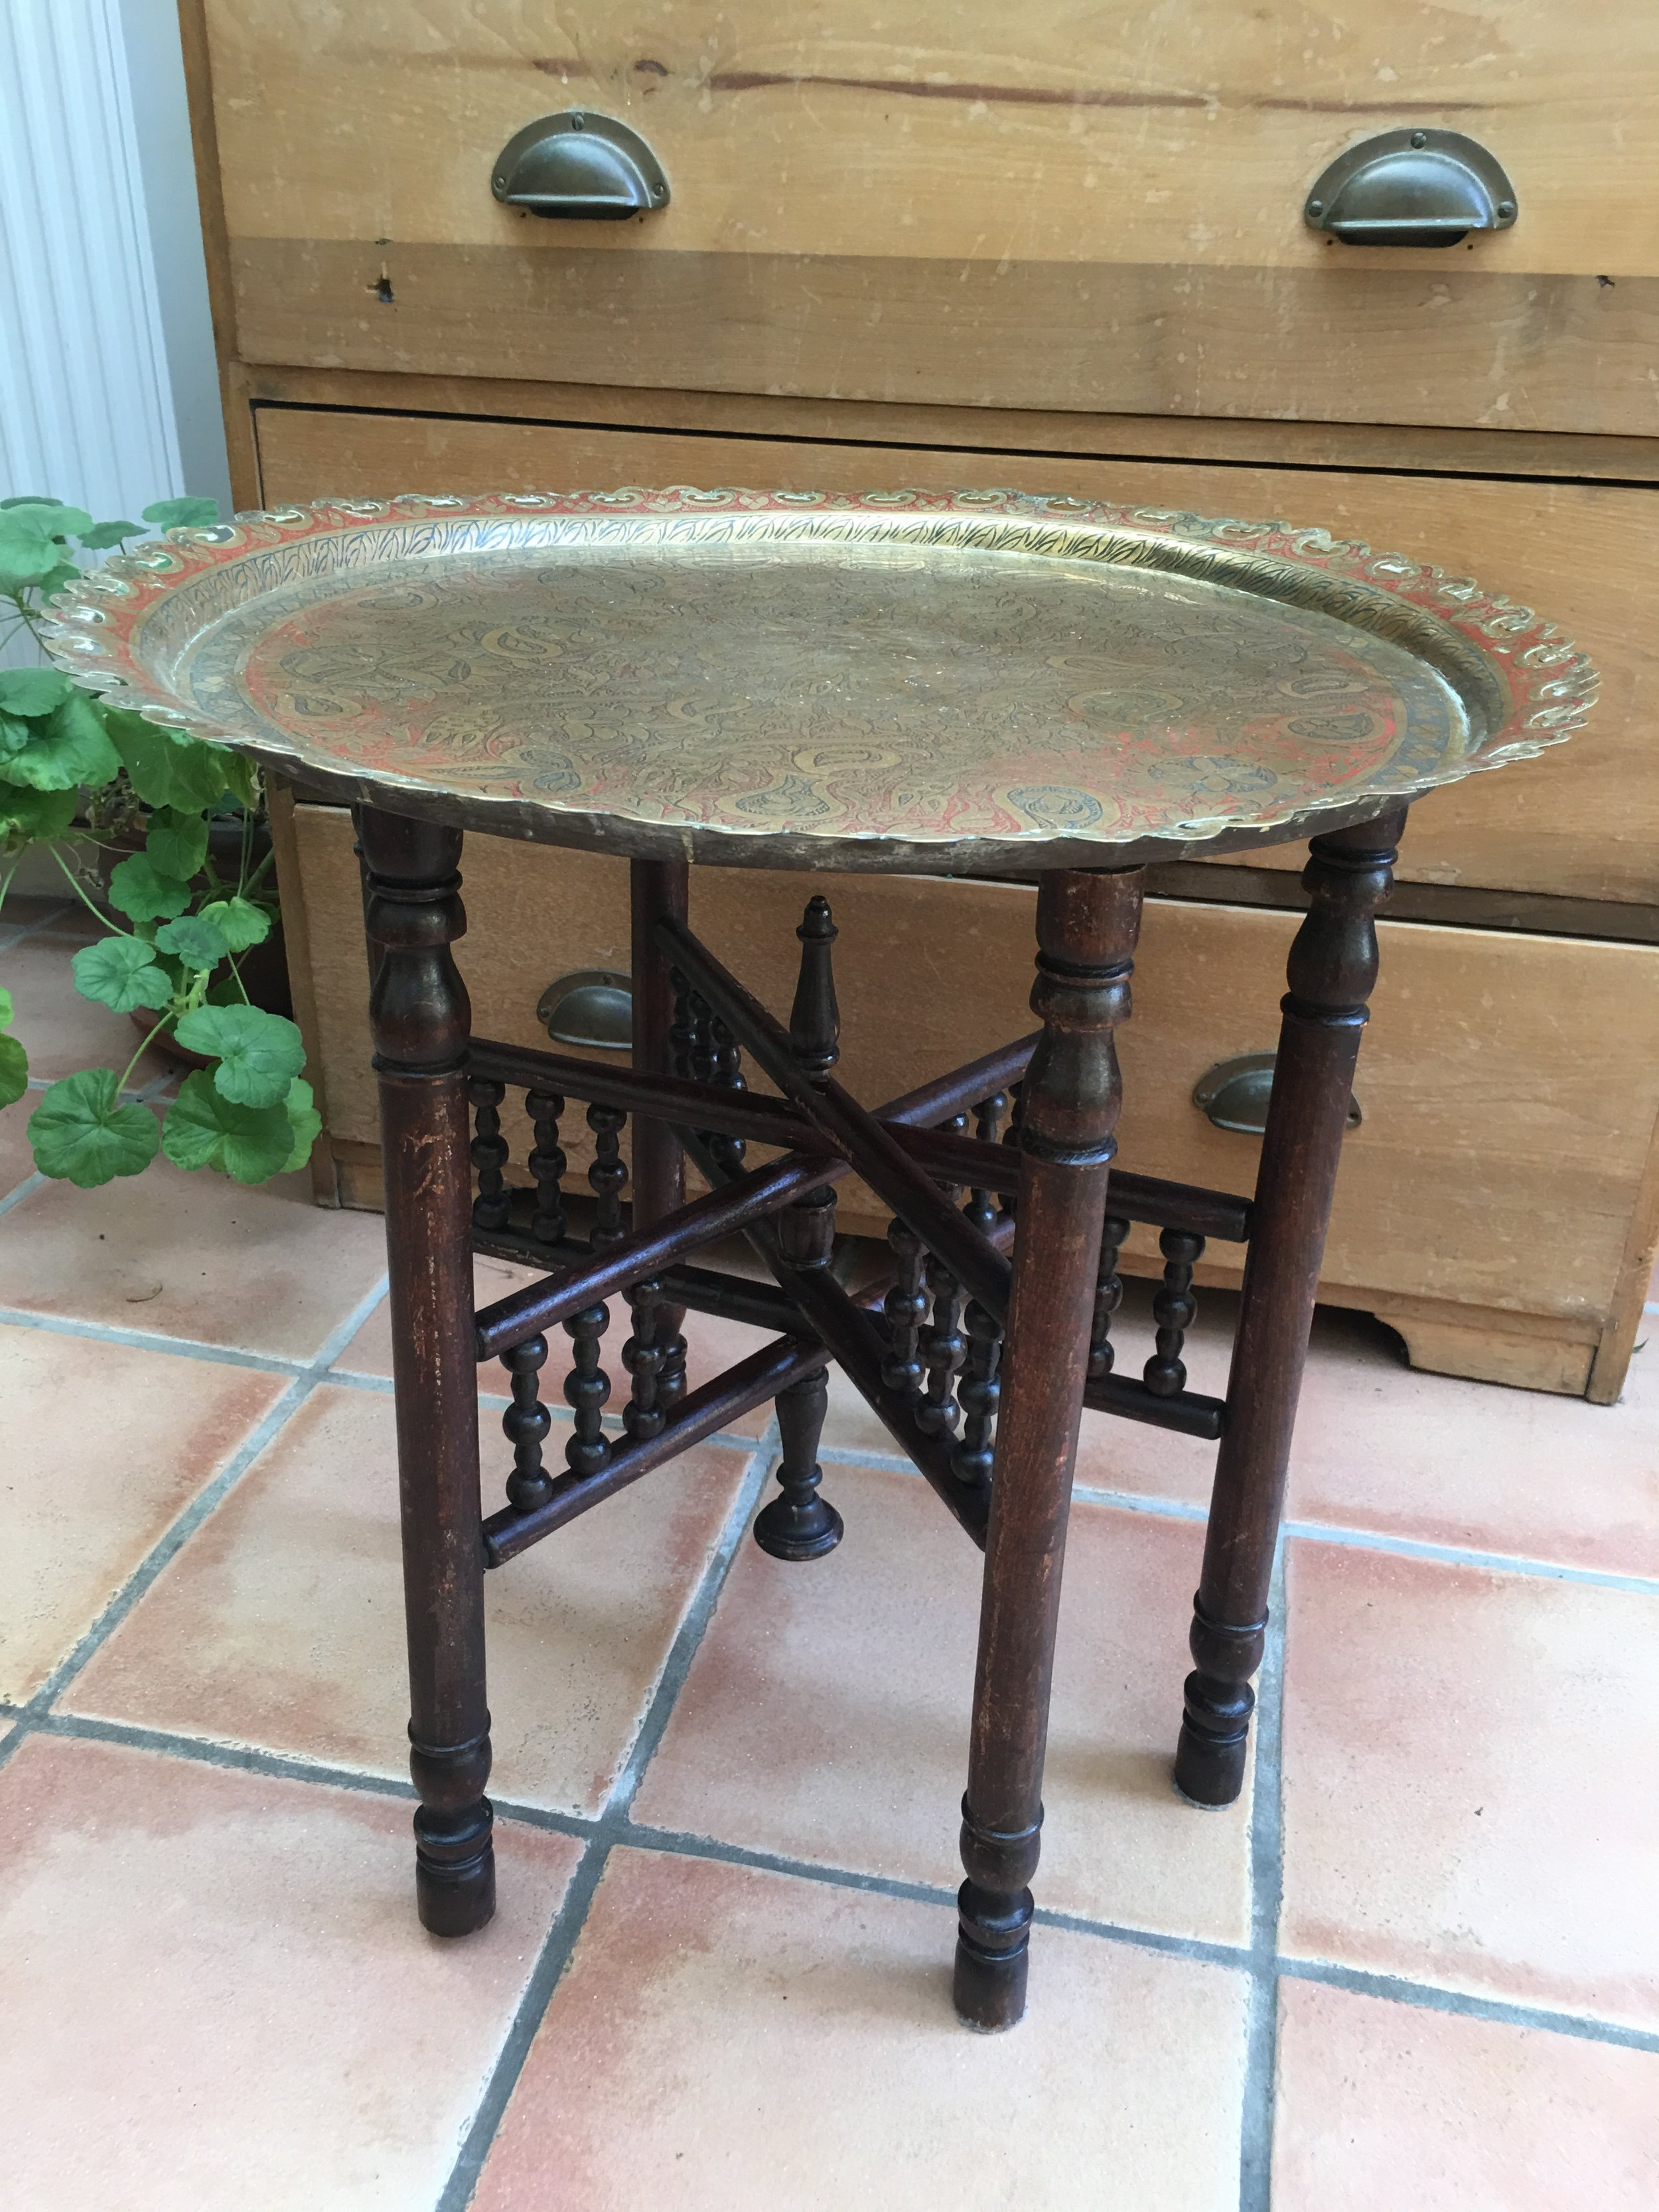 Moroccan Brass Table £15